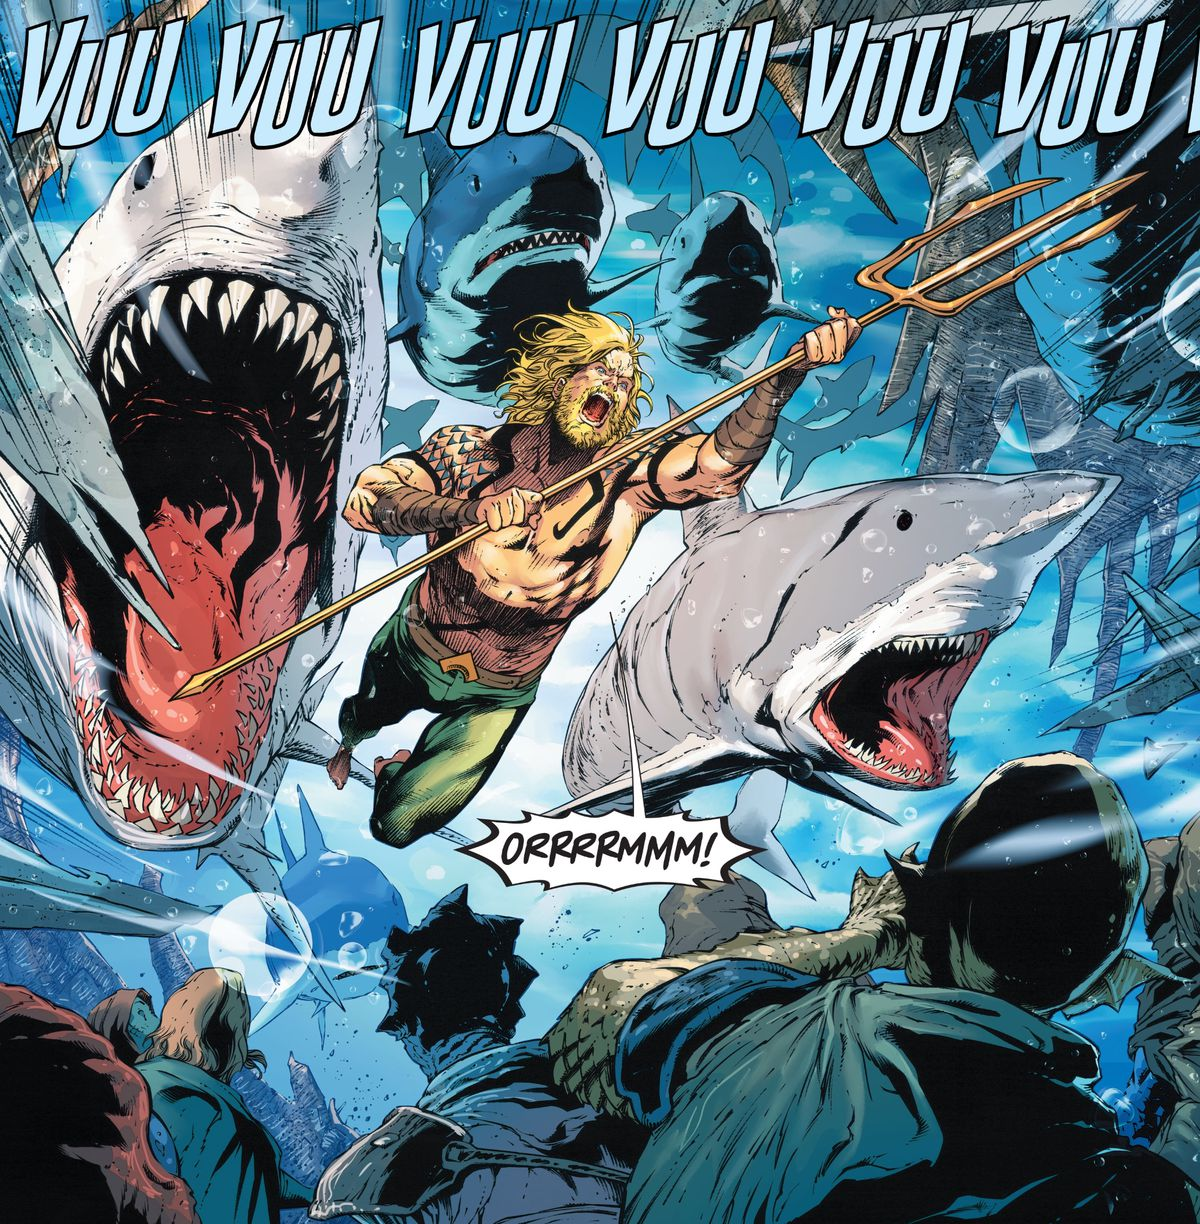 Roaring in rage, Aquaman leads an entire group of sharks through the seas, in Aquaman #59, DC Comics (2020).